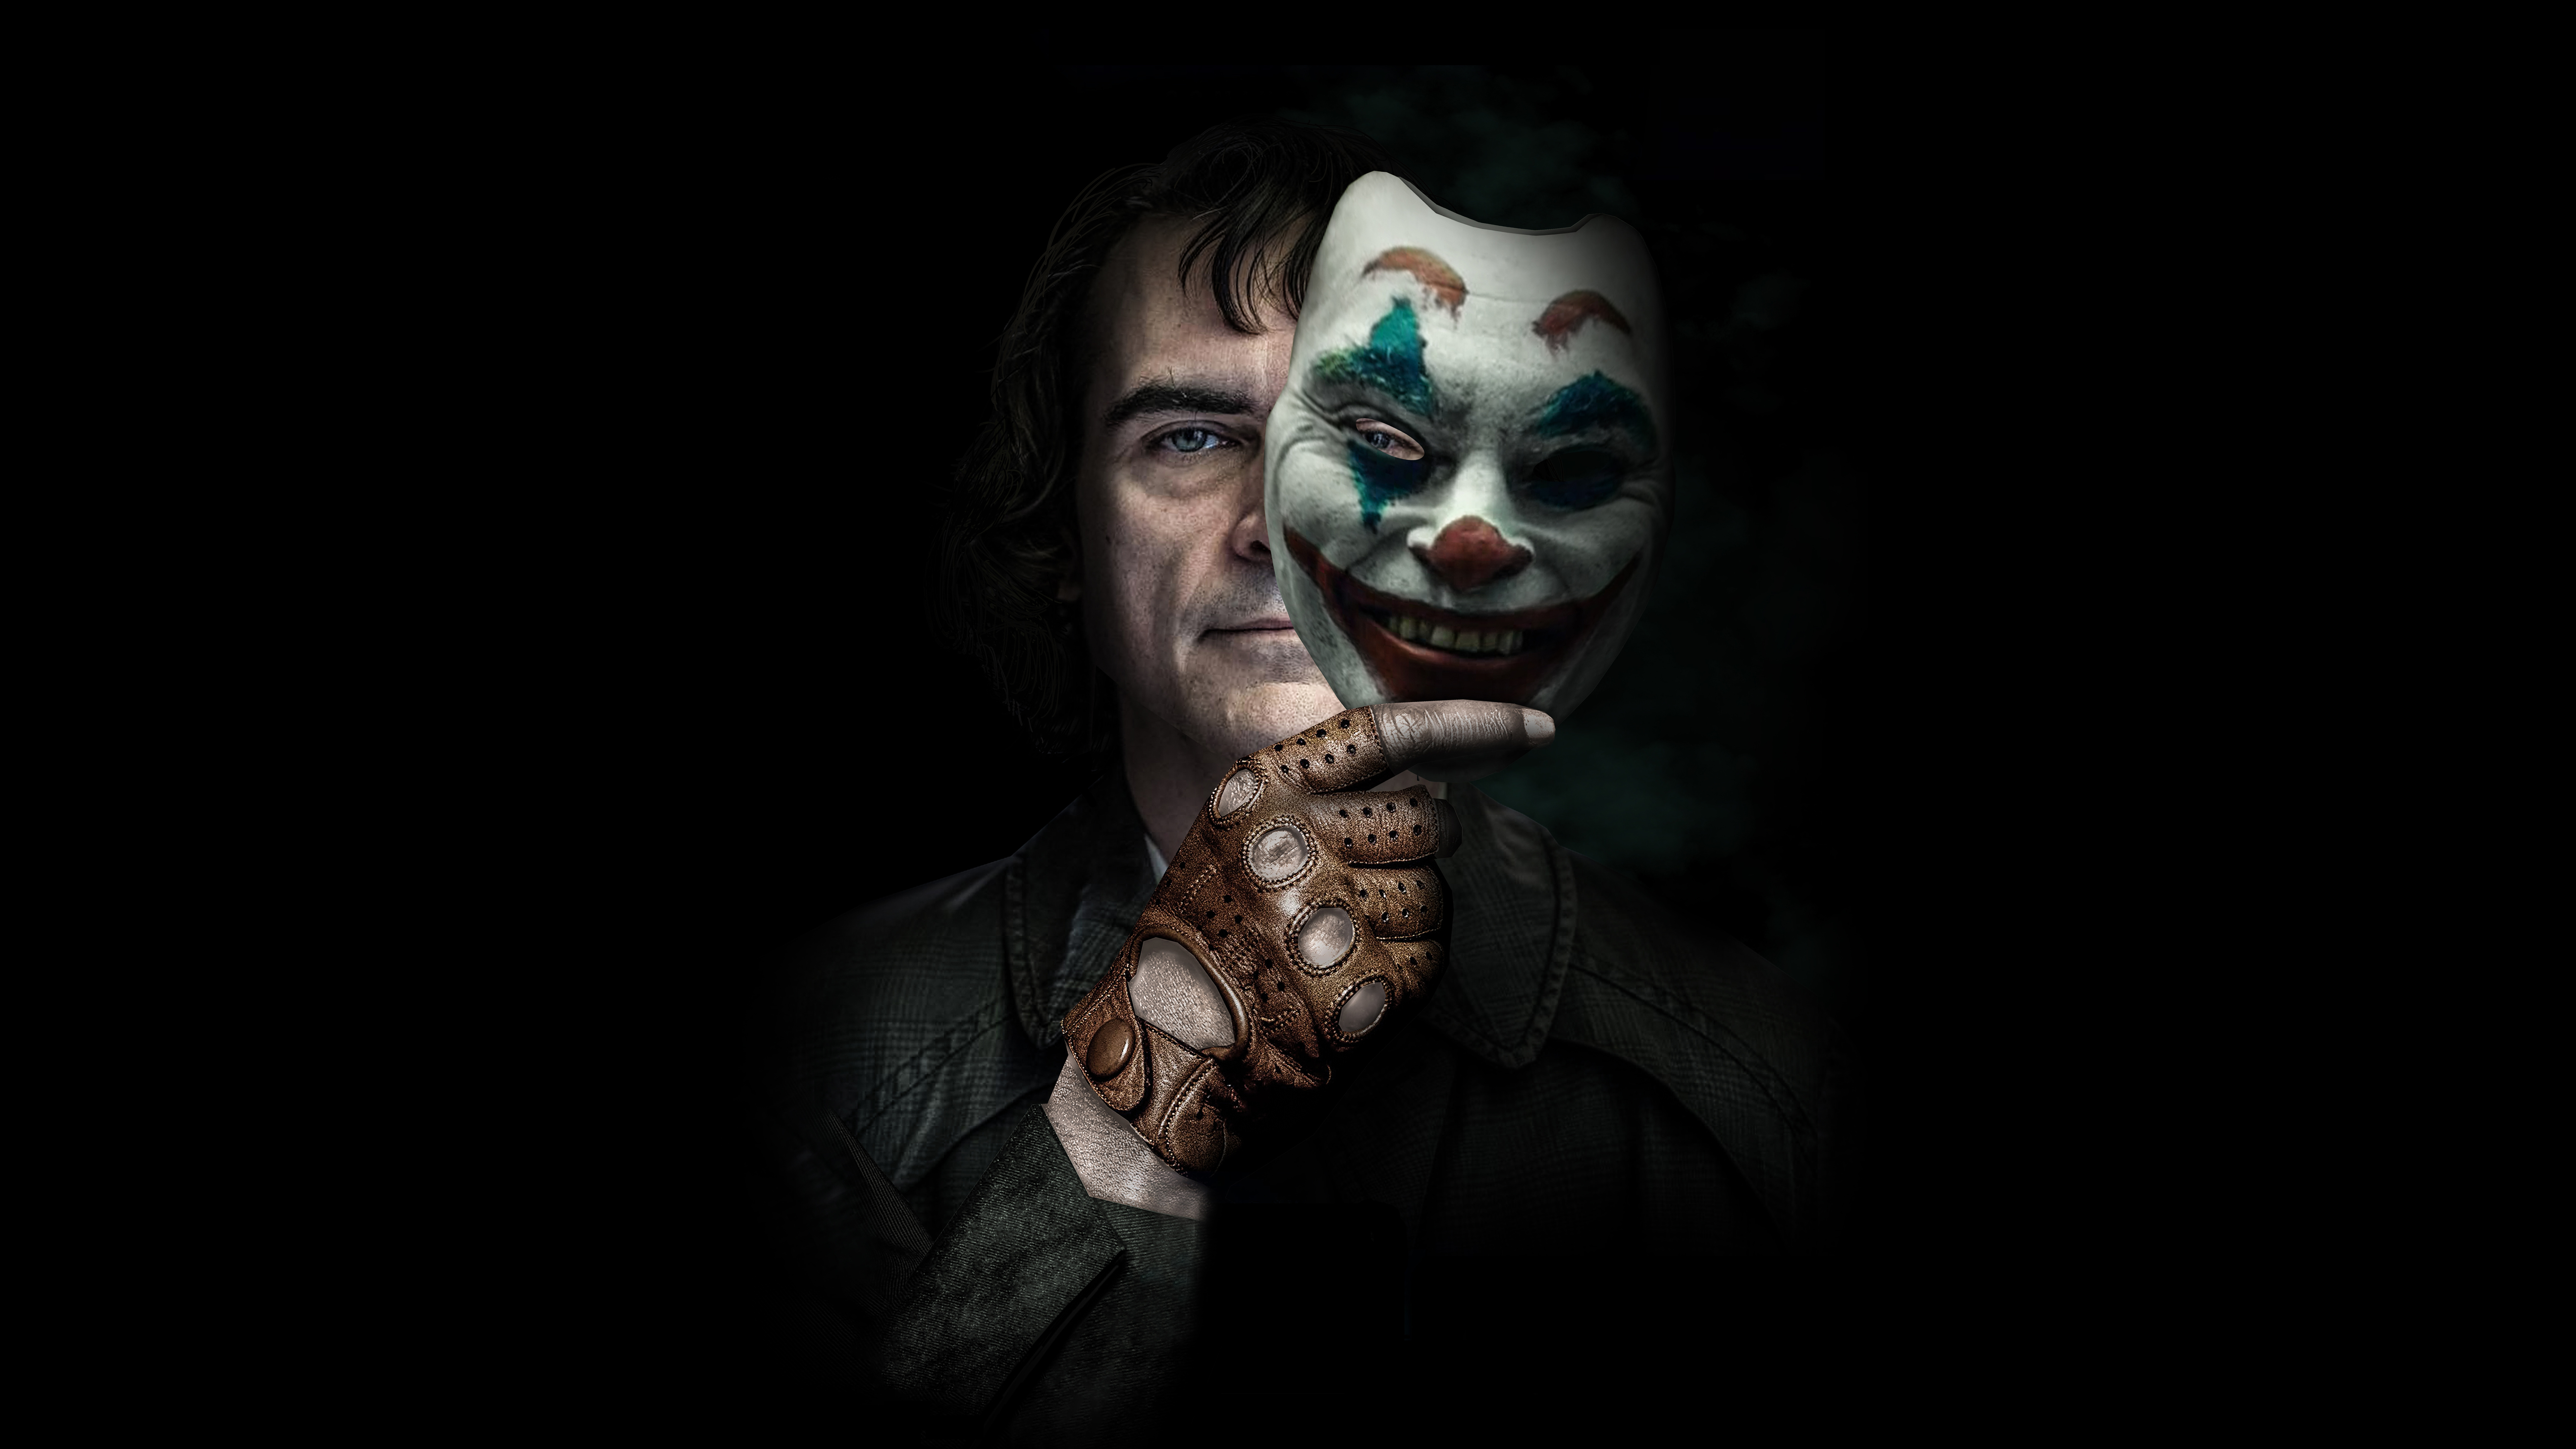 Joker 2019 Joaquin Phoenix 8k Wallpaper 13